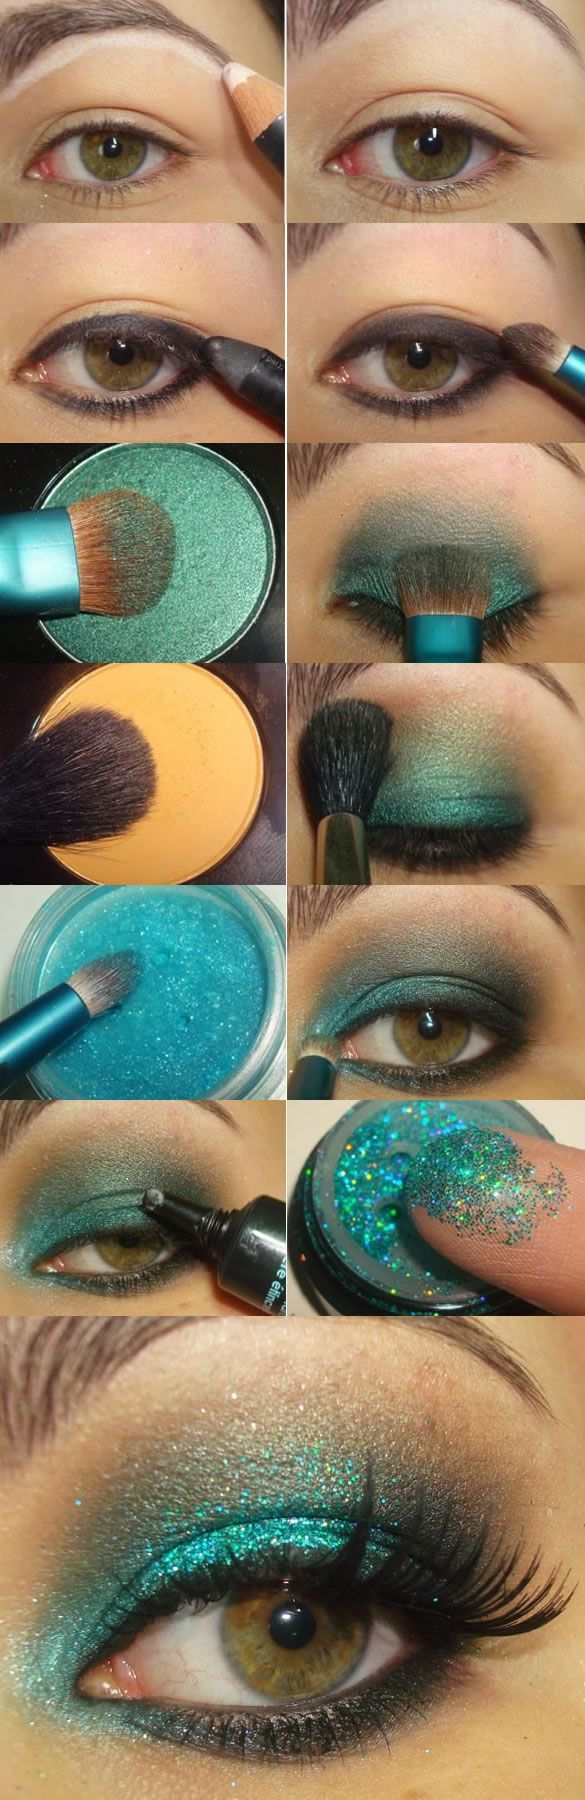 Step By Step Glitter Eye Makeup Tutorial Pictures, Photos ...